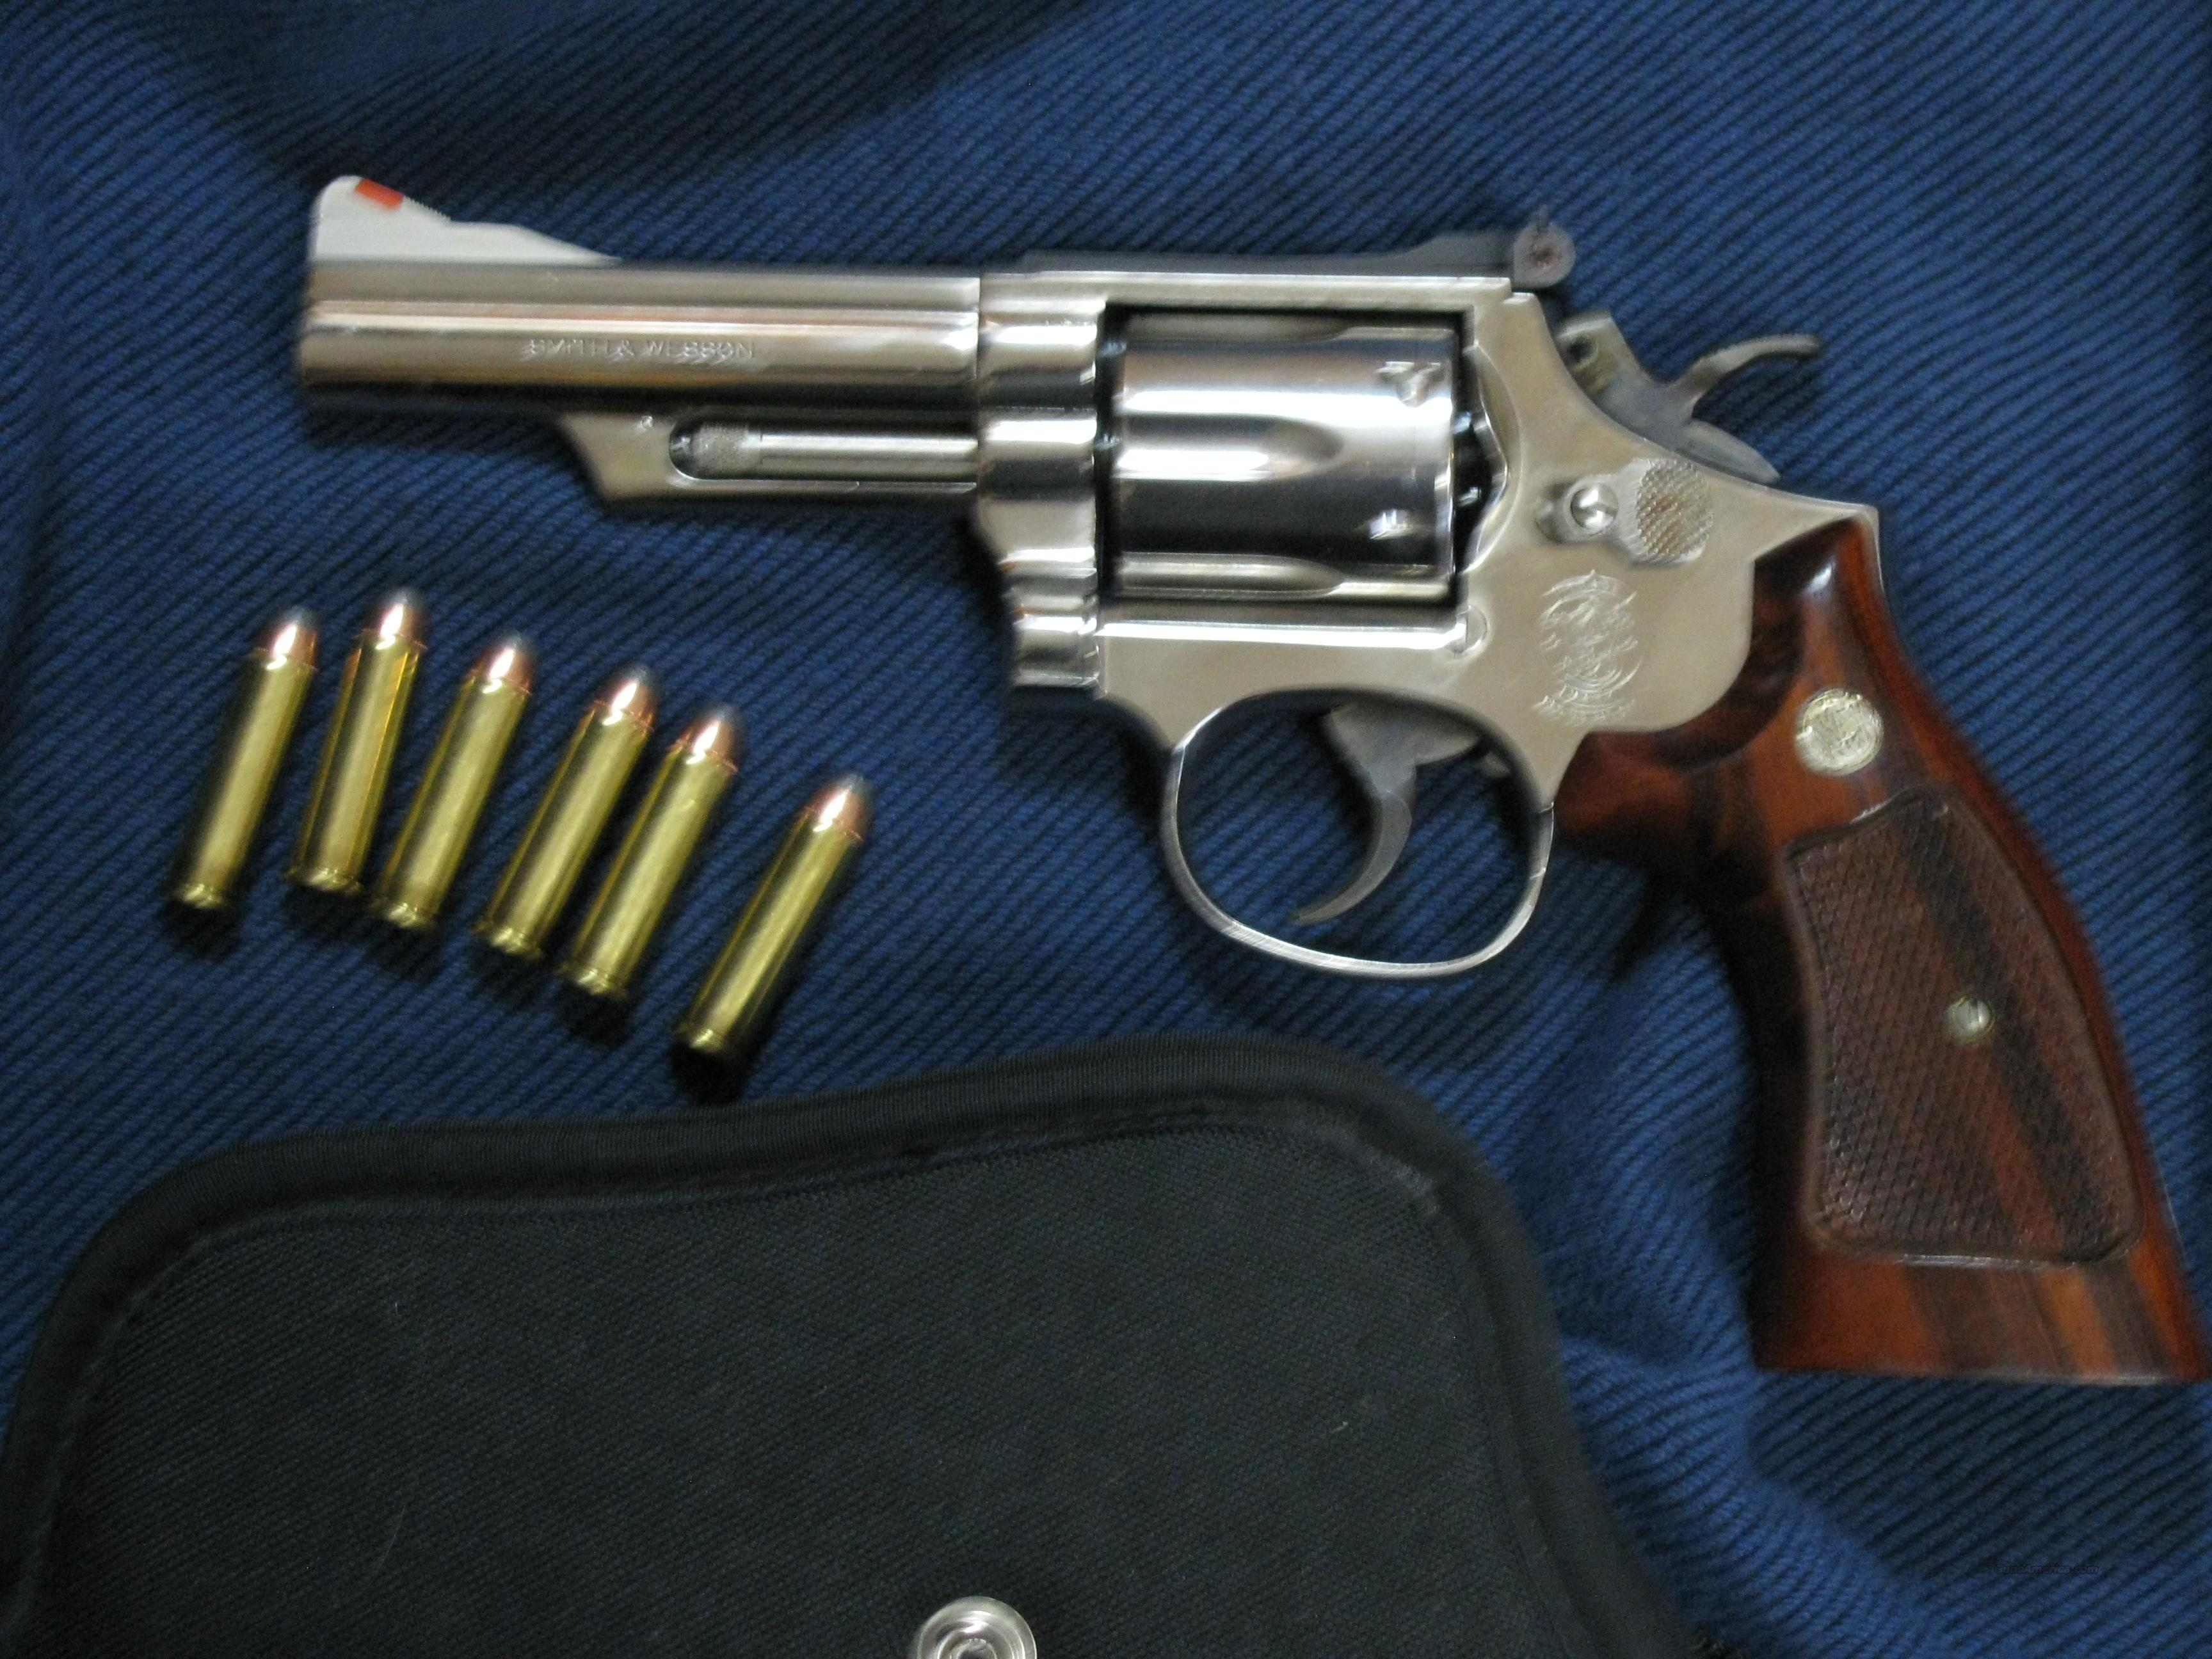 Smith Wesson Model 19-5 357 Magnum  Guns > Pistols > Smith & Wesson Revolvers > Full Frame Revolver